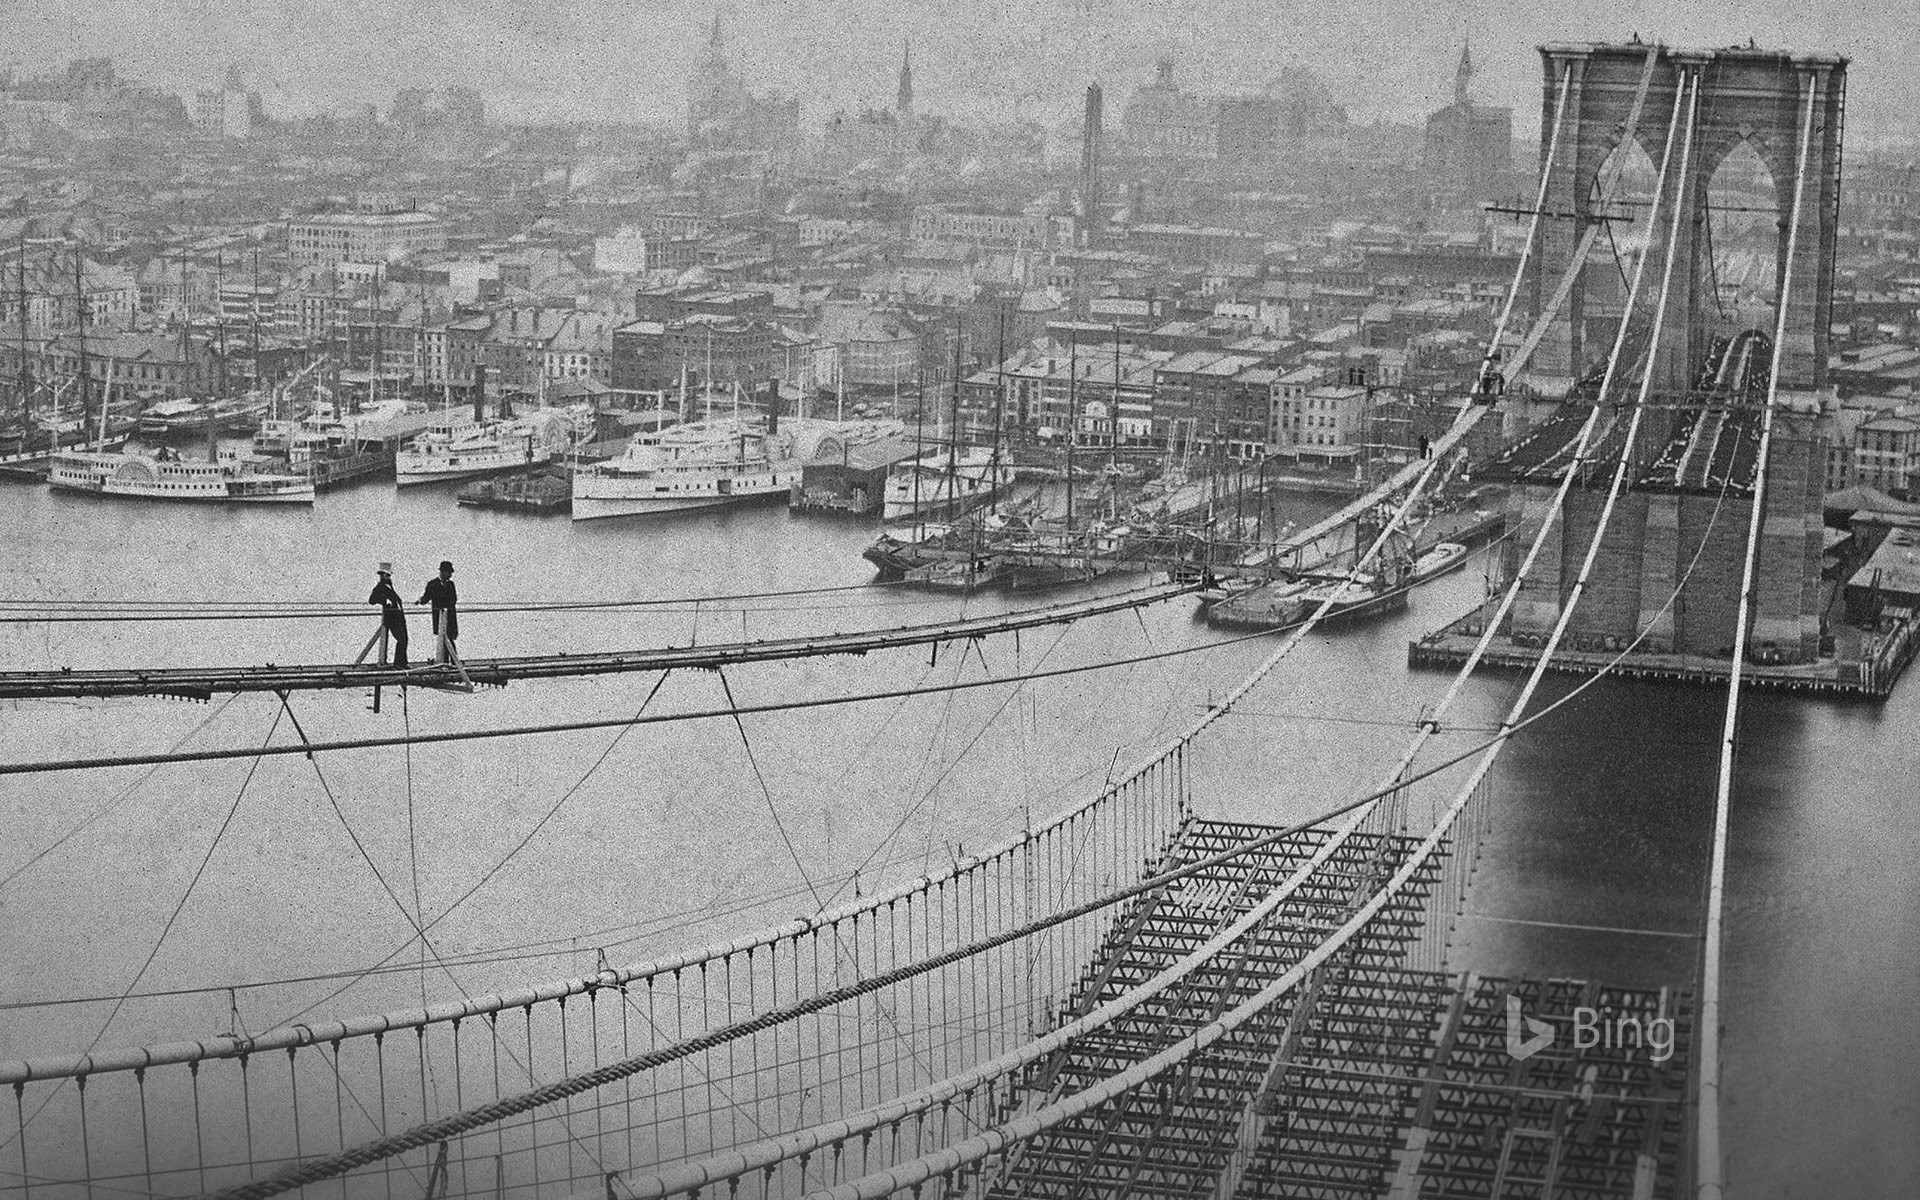 The Brooklyn Bridge under construction in New York, USA, in 1883